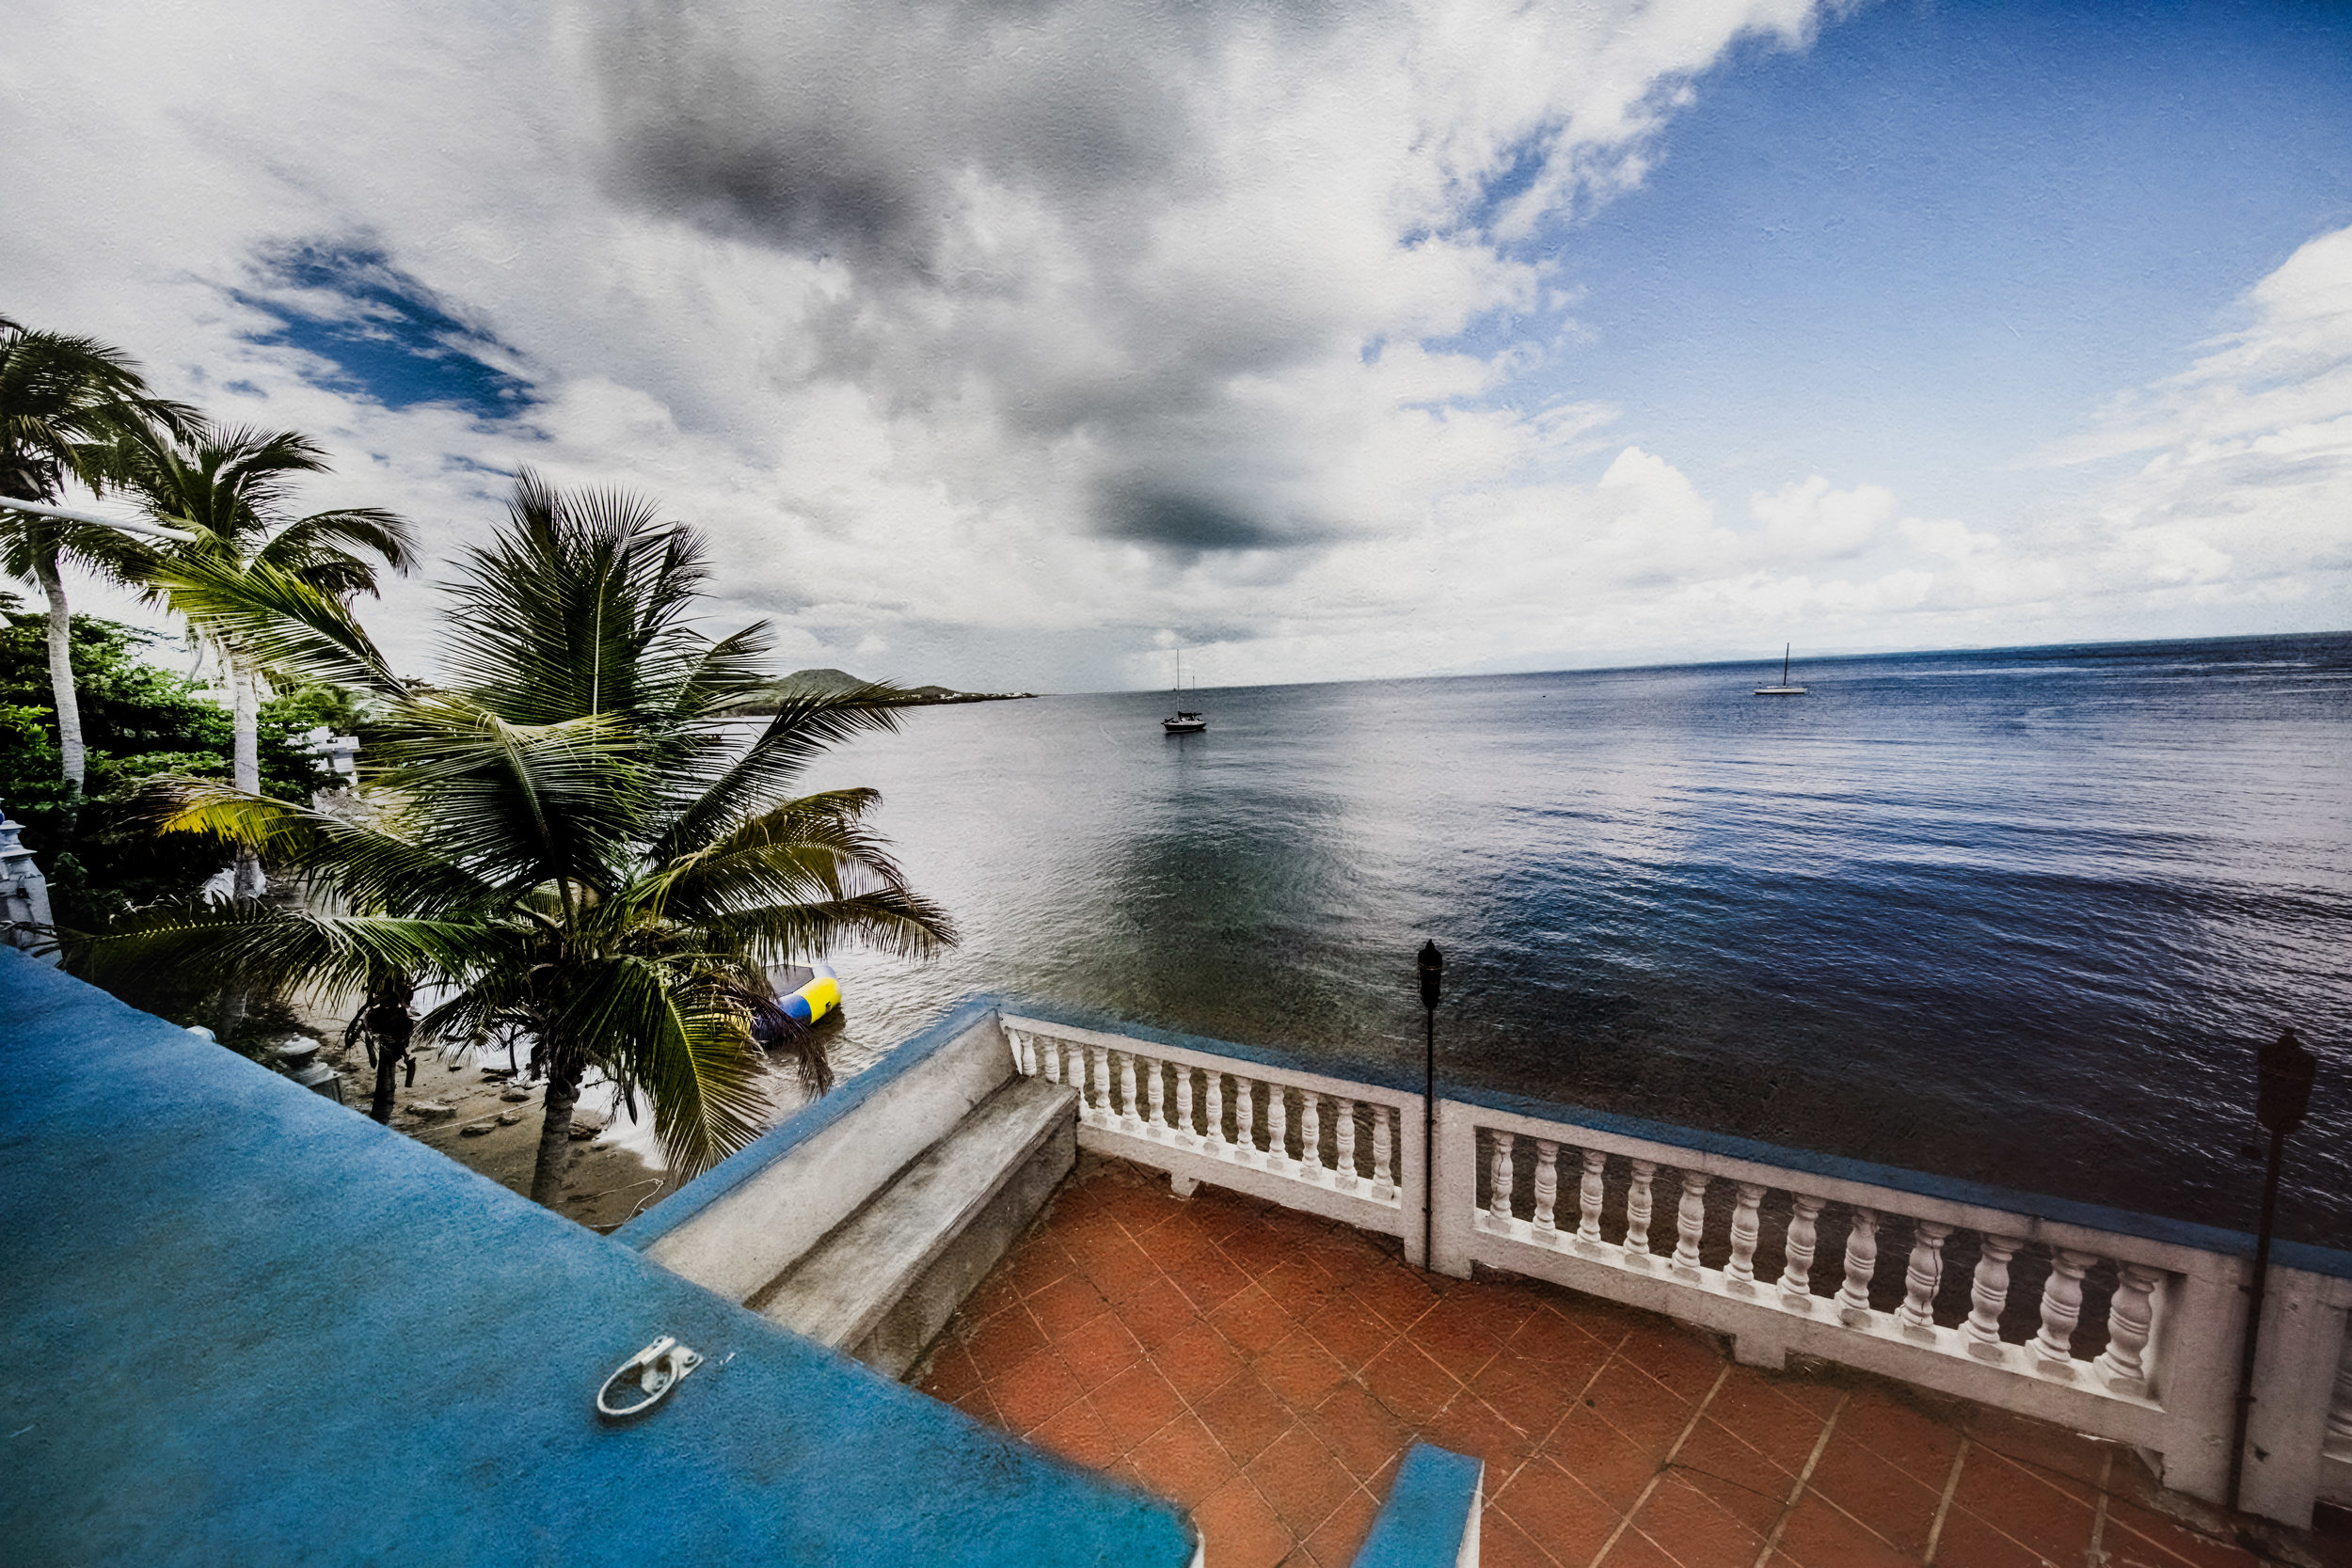 THE LOCATION IS STEPS FROM VIEQUES HARBOR, THE PERFECT SETTING FOR SUNSETS, LIBATIONS, AND CONVERSATION. -